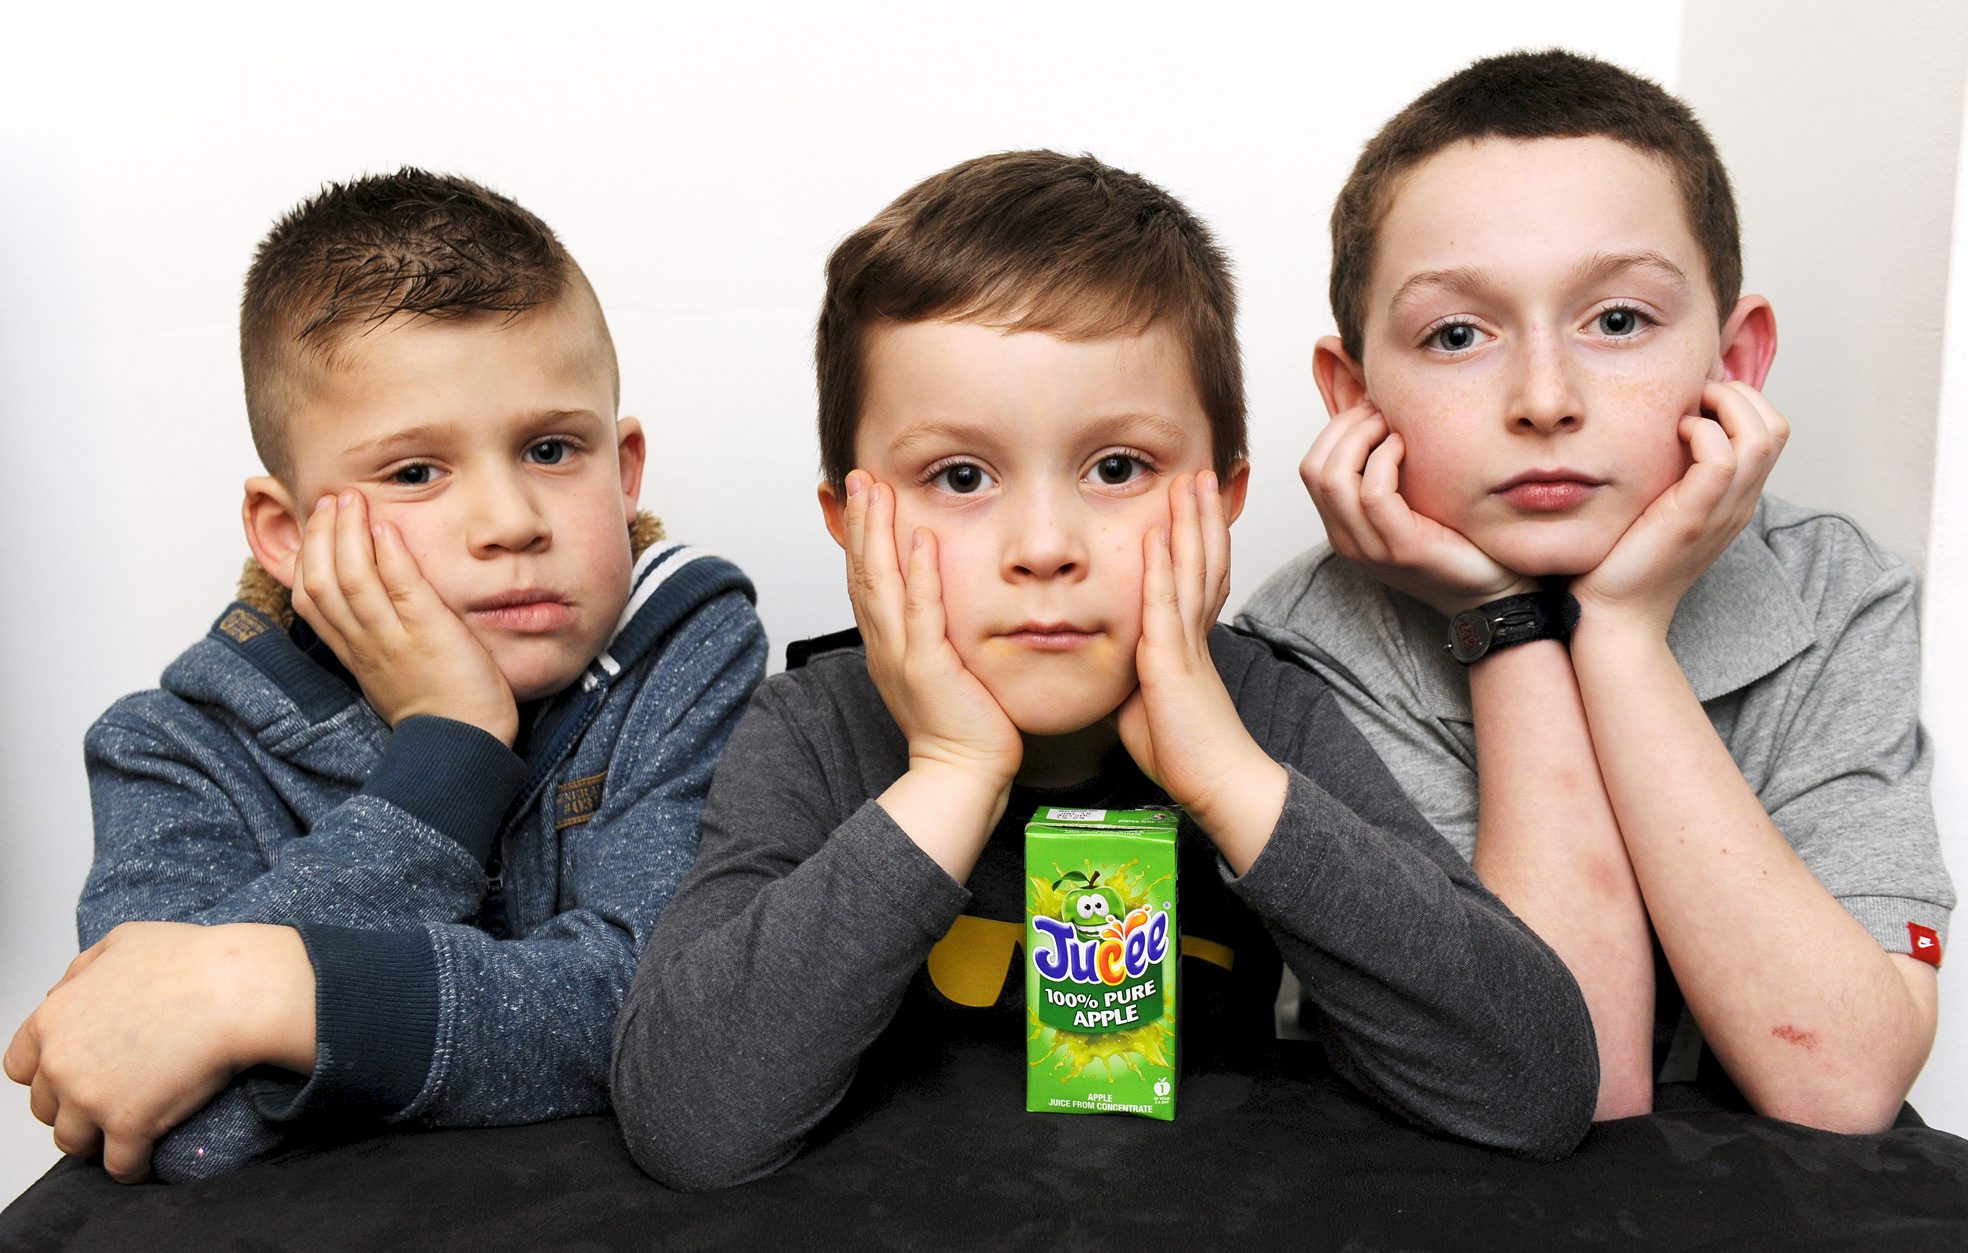 A DAY out at a play centre turned sour for these three disappointed youngsters, from left, Sam Crutchley, aged seven, Luke Marsh, aged five, and Josh Taylor, aged 10